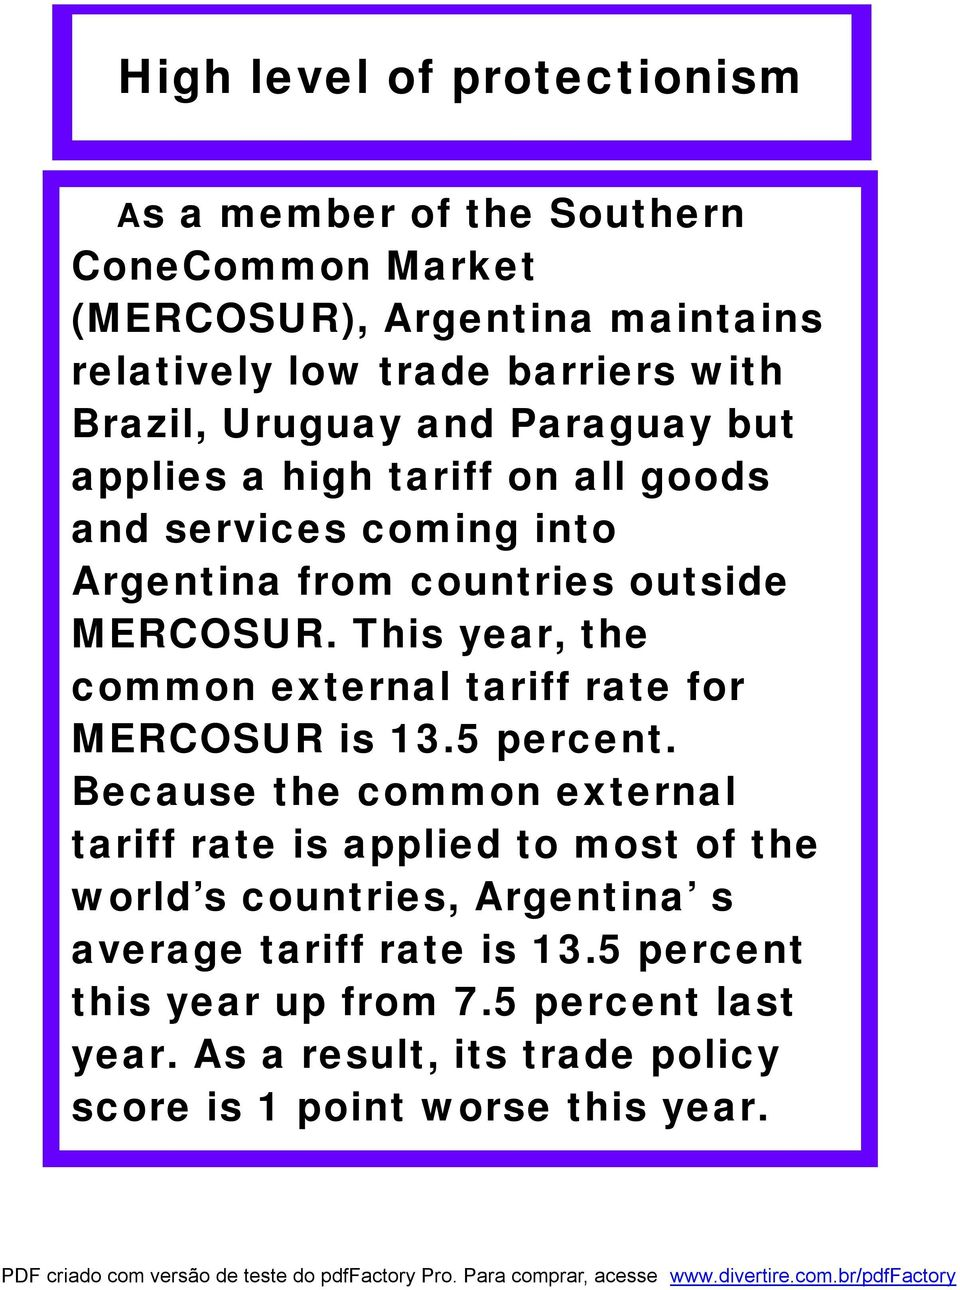 This year, the common external tariff rate for MERCOSUR is 13.5 percent.